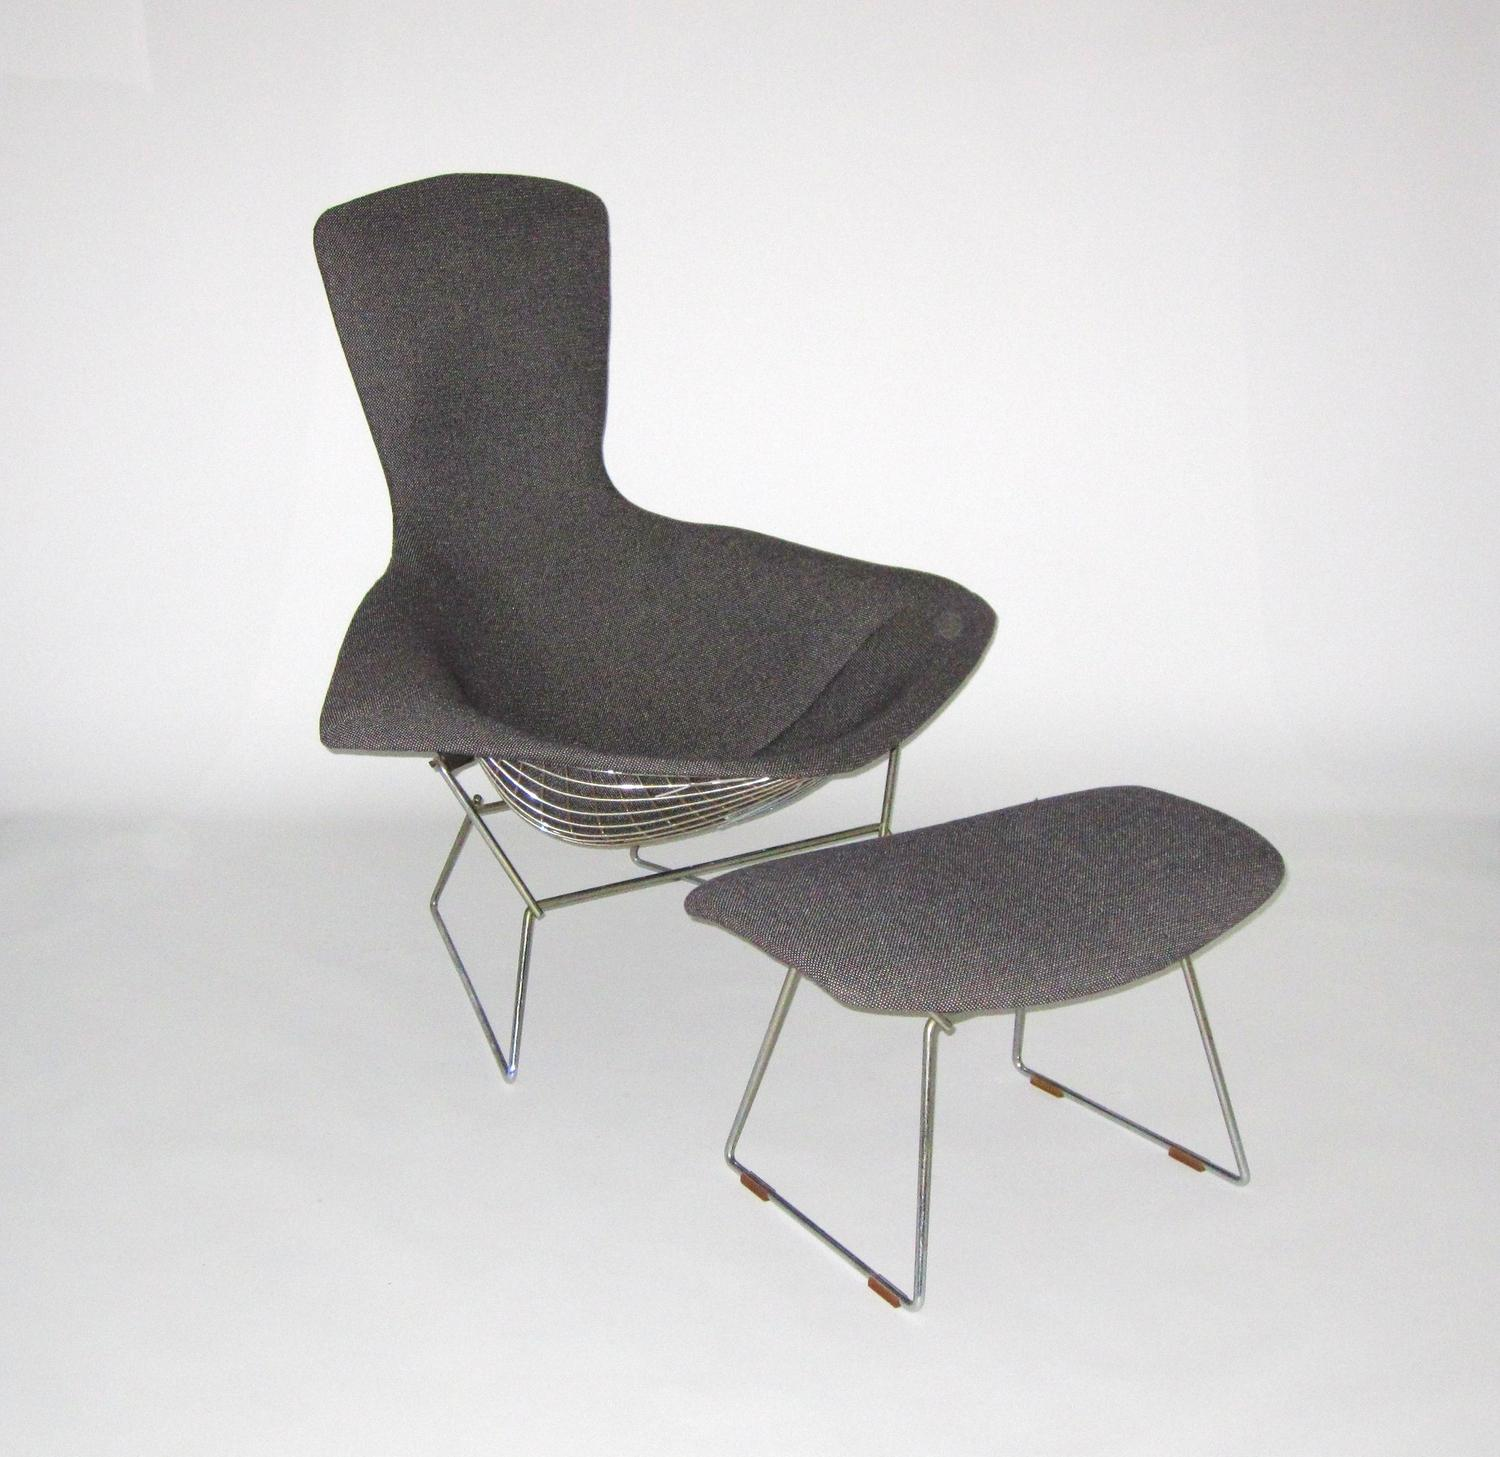 knoll chadwick chair instructions design within reach harry bertoia for bird with ottoman c 1950